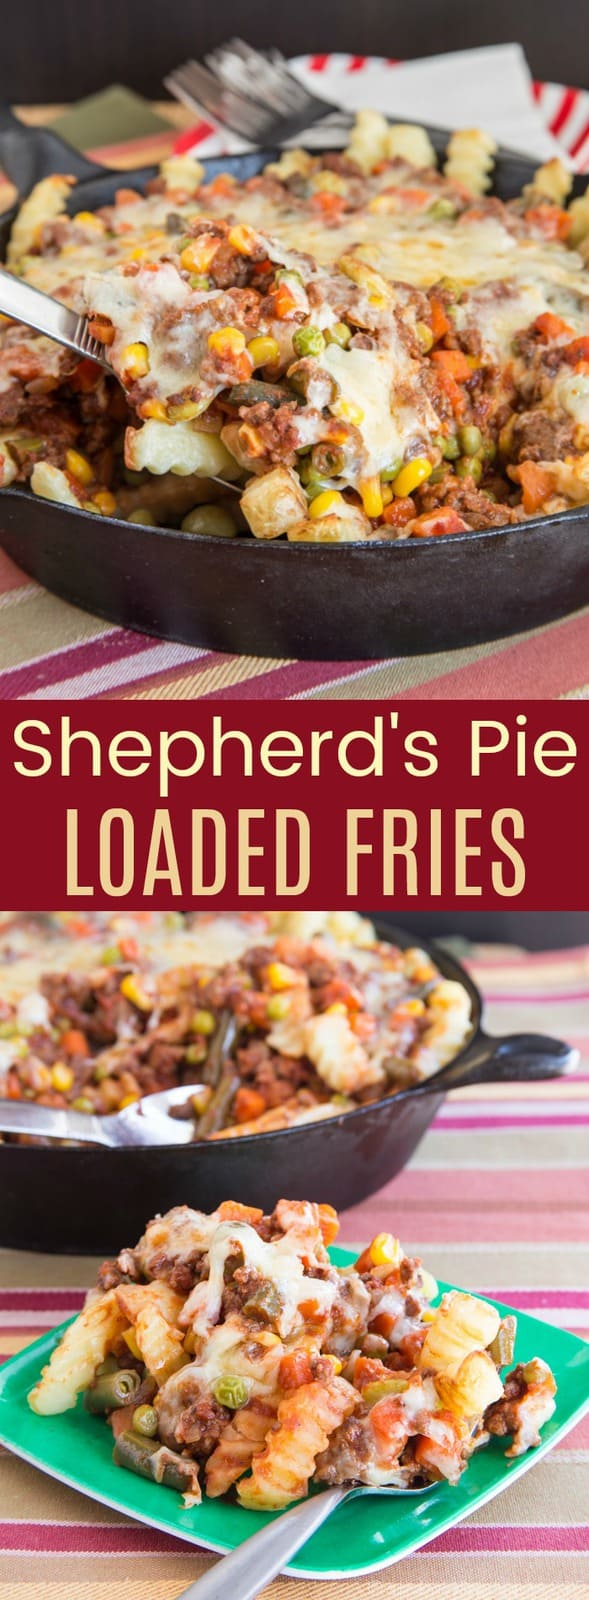 Shepherd's Pie Loaded Fries - the classic comfort food recipe becomes a fun, quick and easy dinner the family will love, filled with plenty of beef and vegetables. #cupcakesandkalechips #shepherdspie #loadedfries #glutenfree #stpatricksday #beef